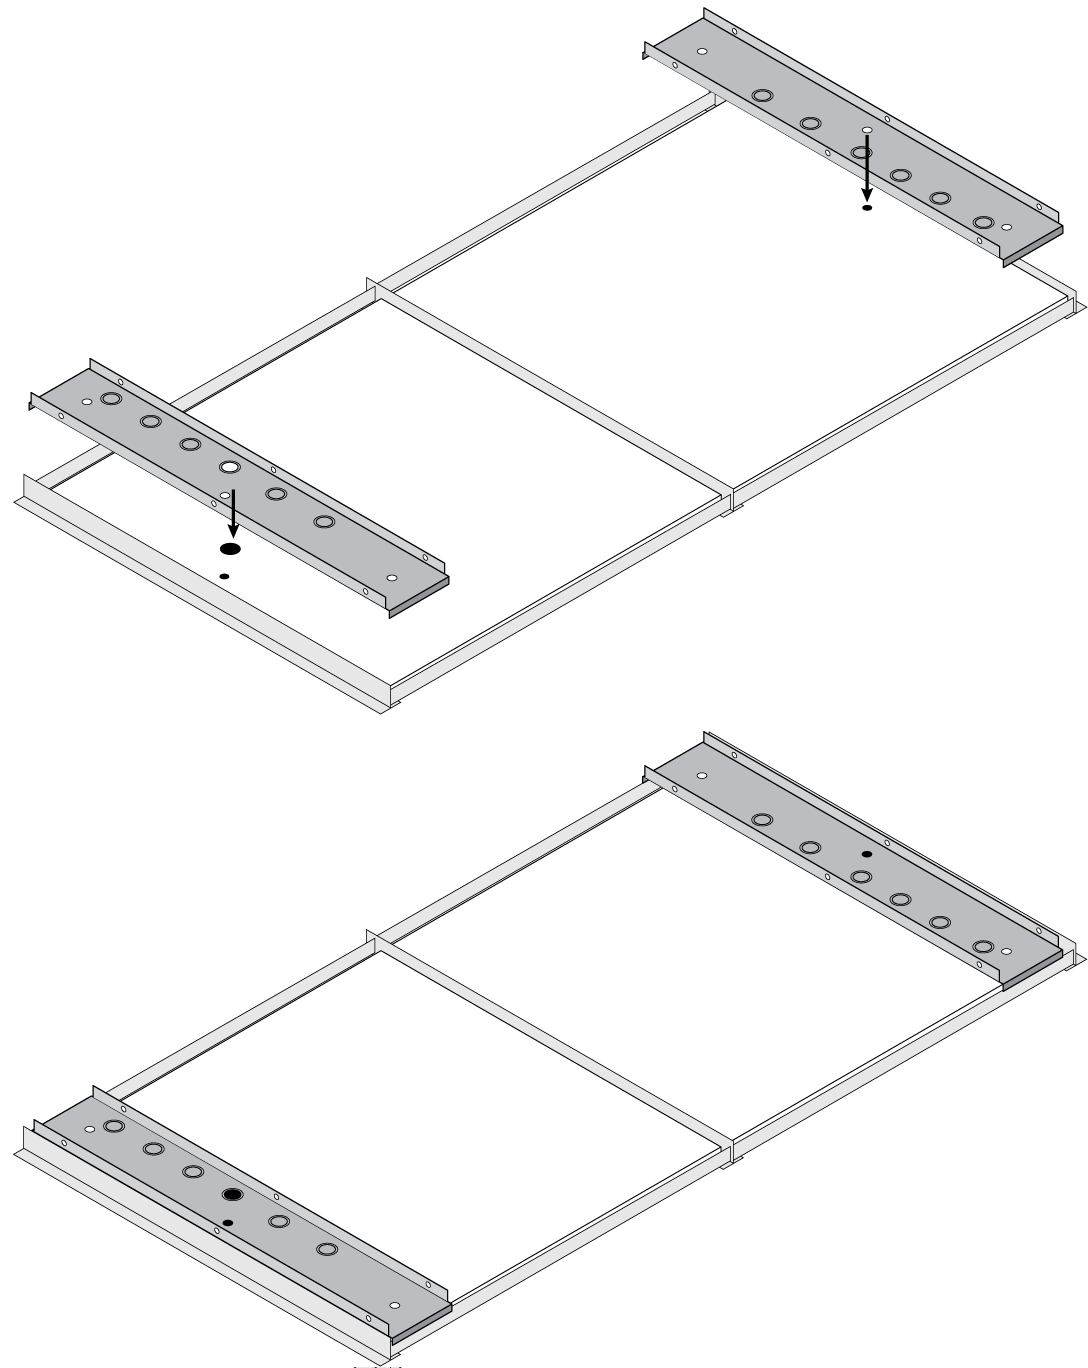 Illustration showing how to install 2 A710-TBs on ceiling T-bars and align them with the holes drilled in the ceiling tiles.